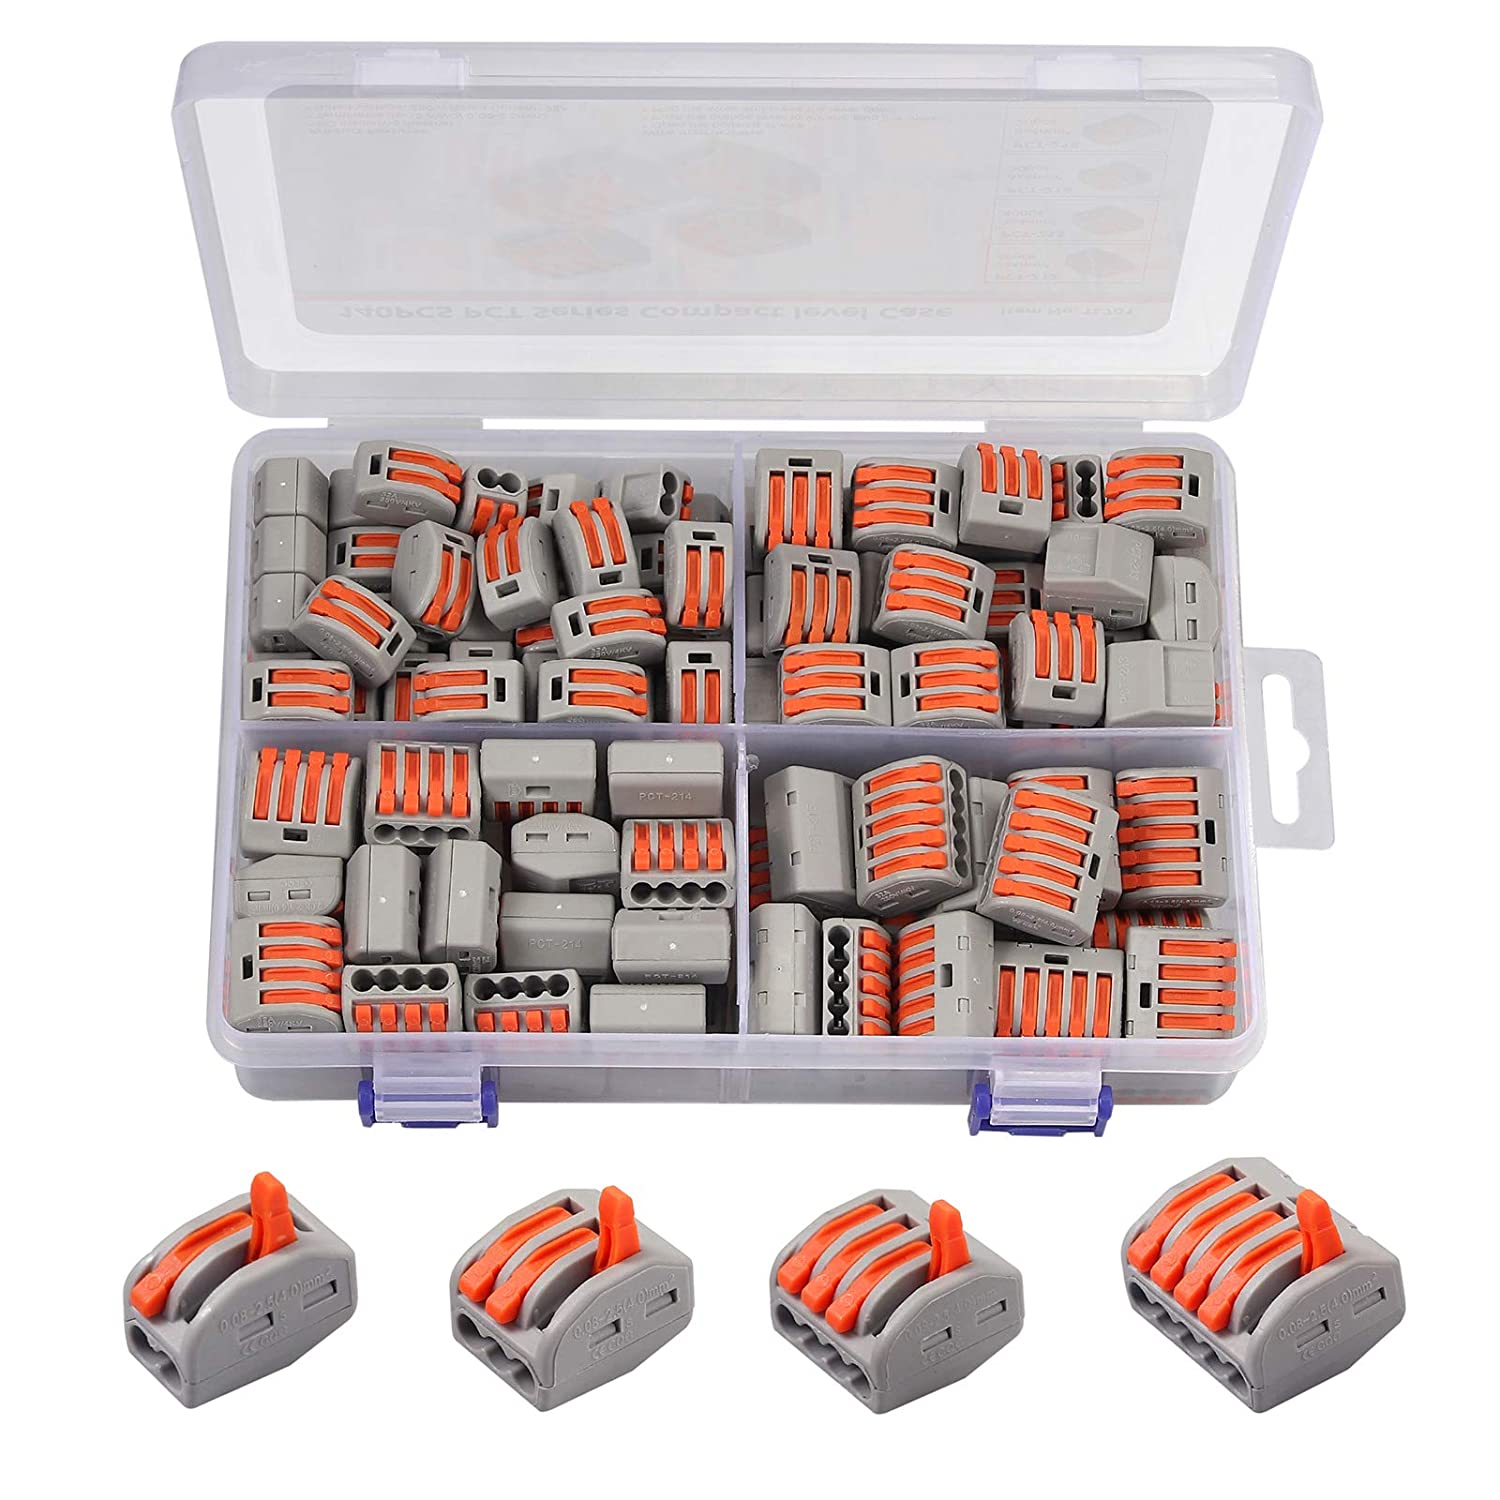 Free shipping on posting reviews CAMWAY 140pcs Lever Nut Wire Conductor Qu Connector Tulsa Mall Pack Compact